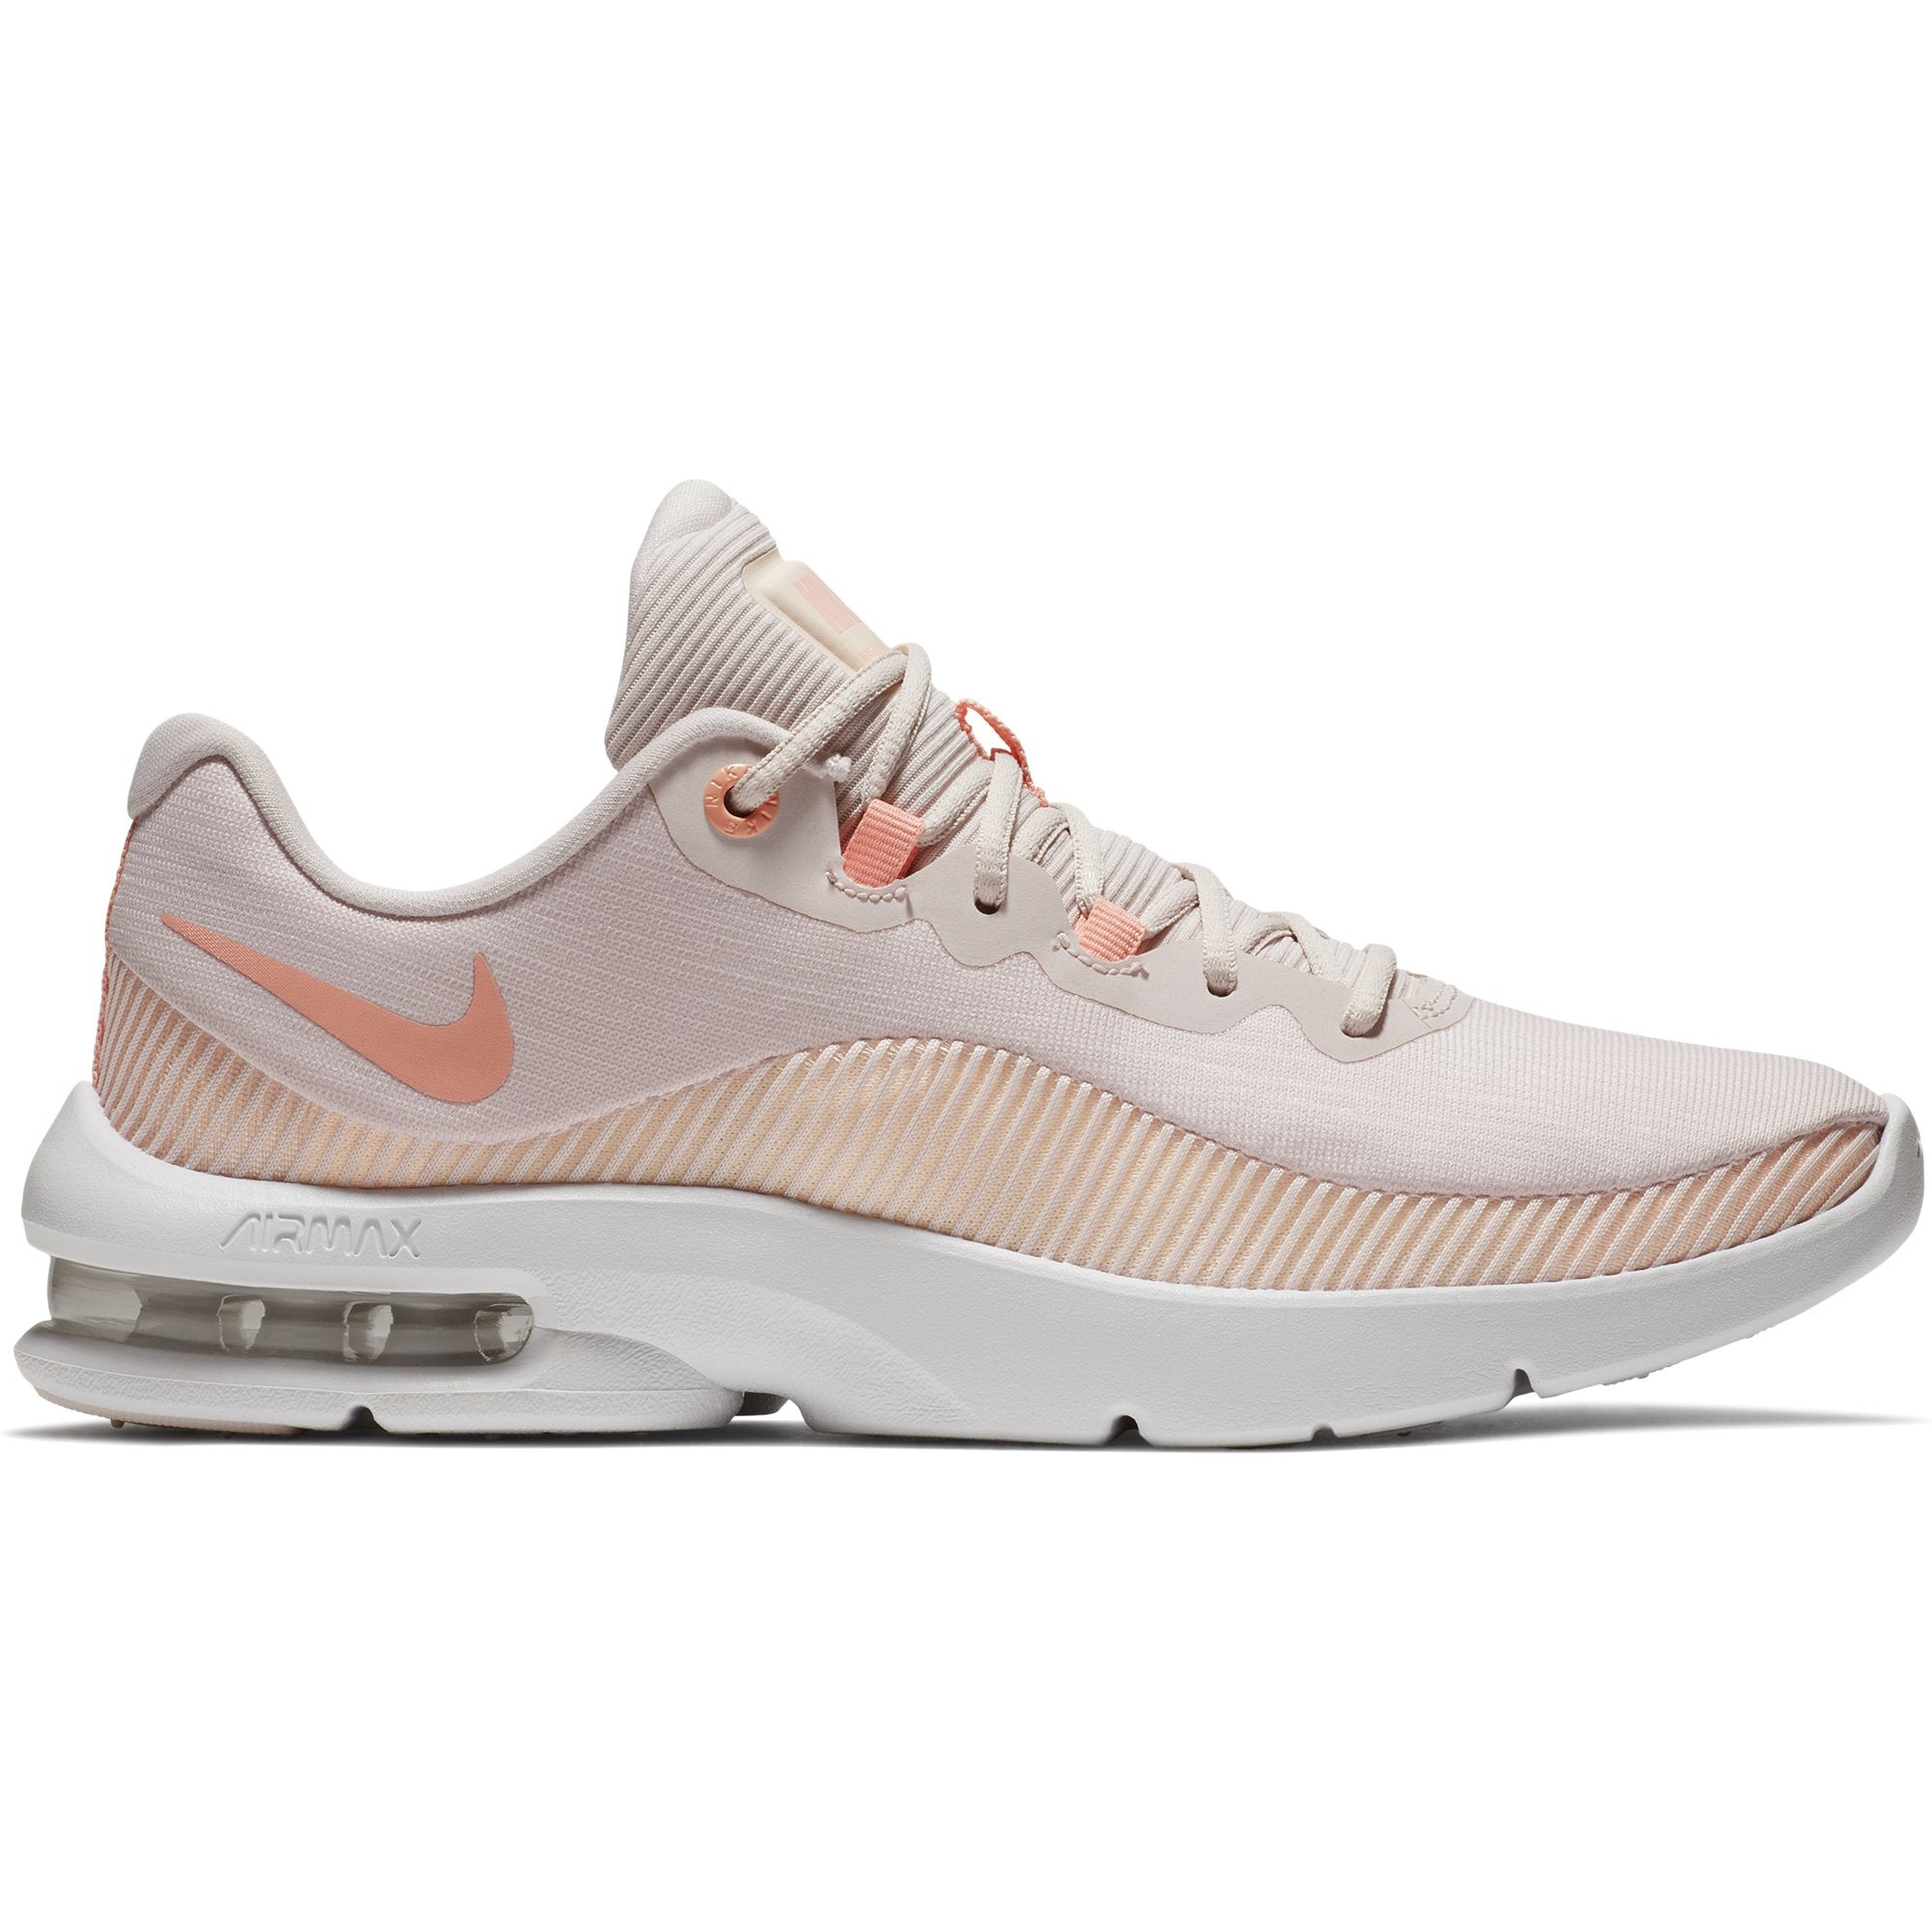 7aff49924f20 ... singapore d4e51 0c9e2  order buy nike women air max advantage 2 running  shoes barely rose oracle pink crimson tint